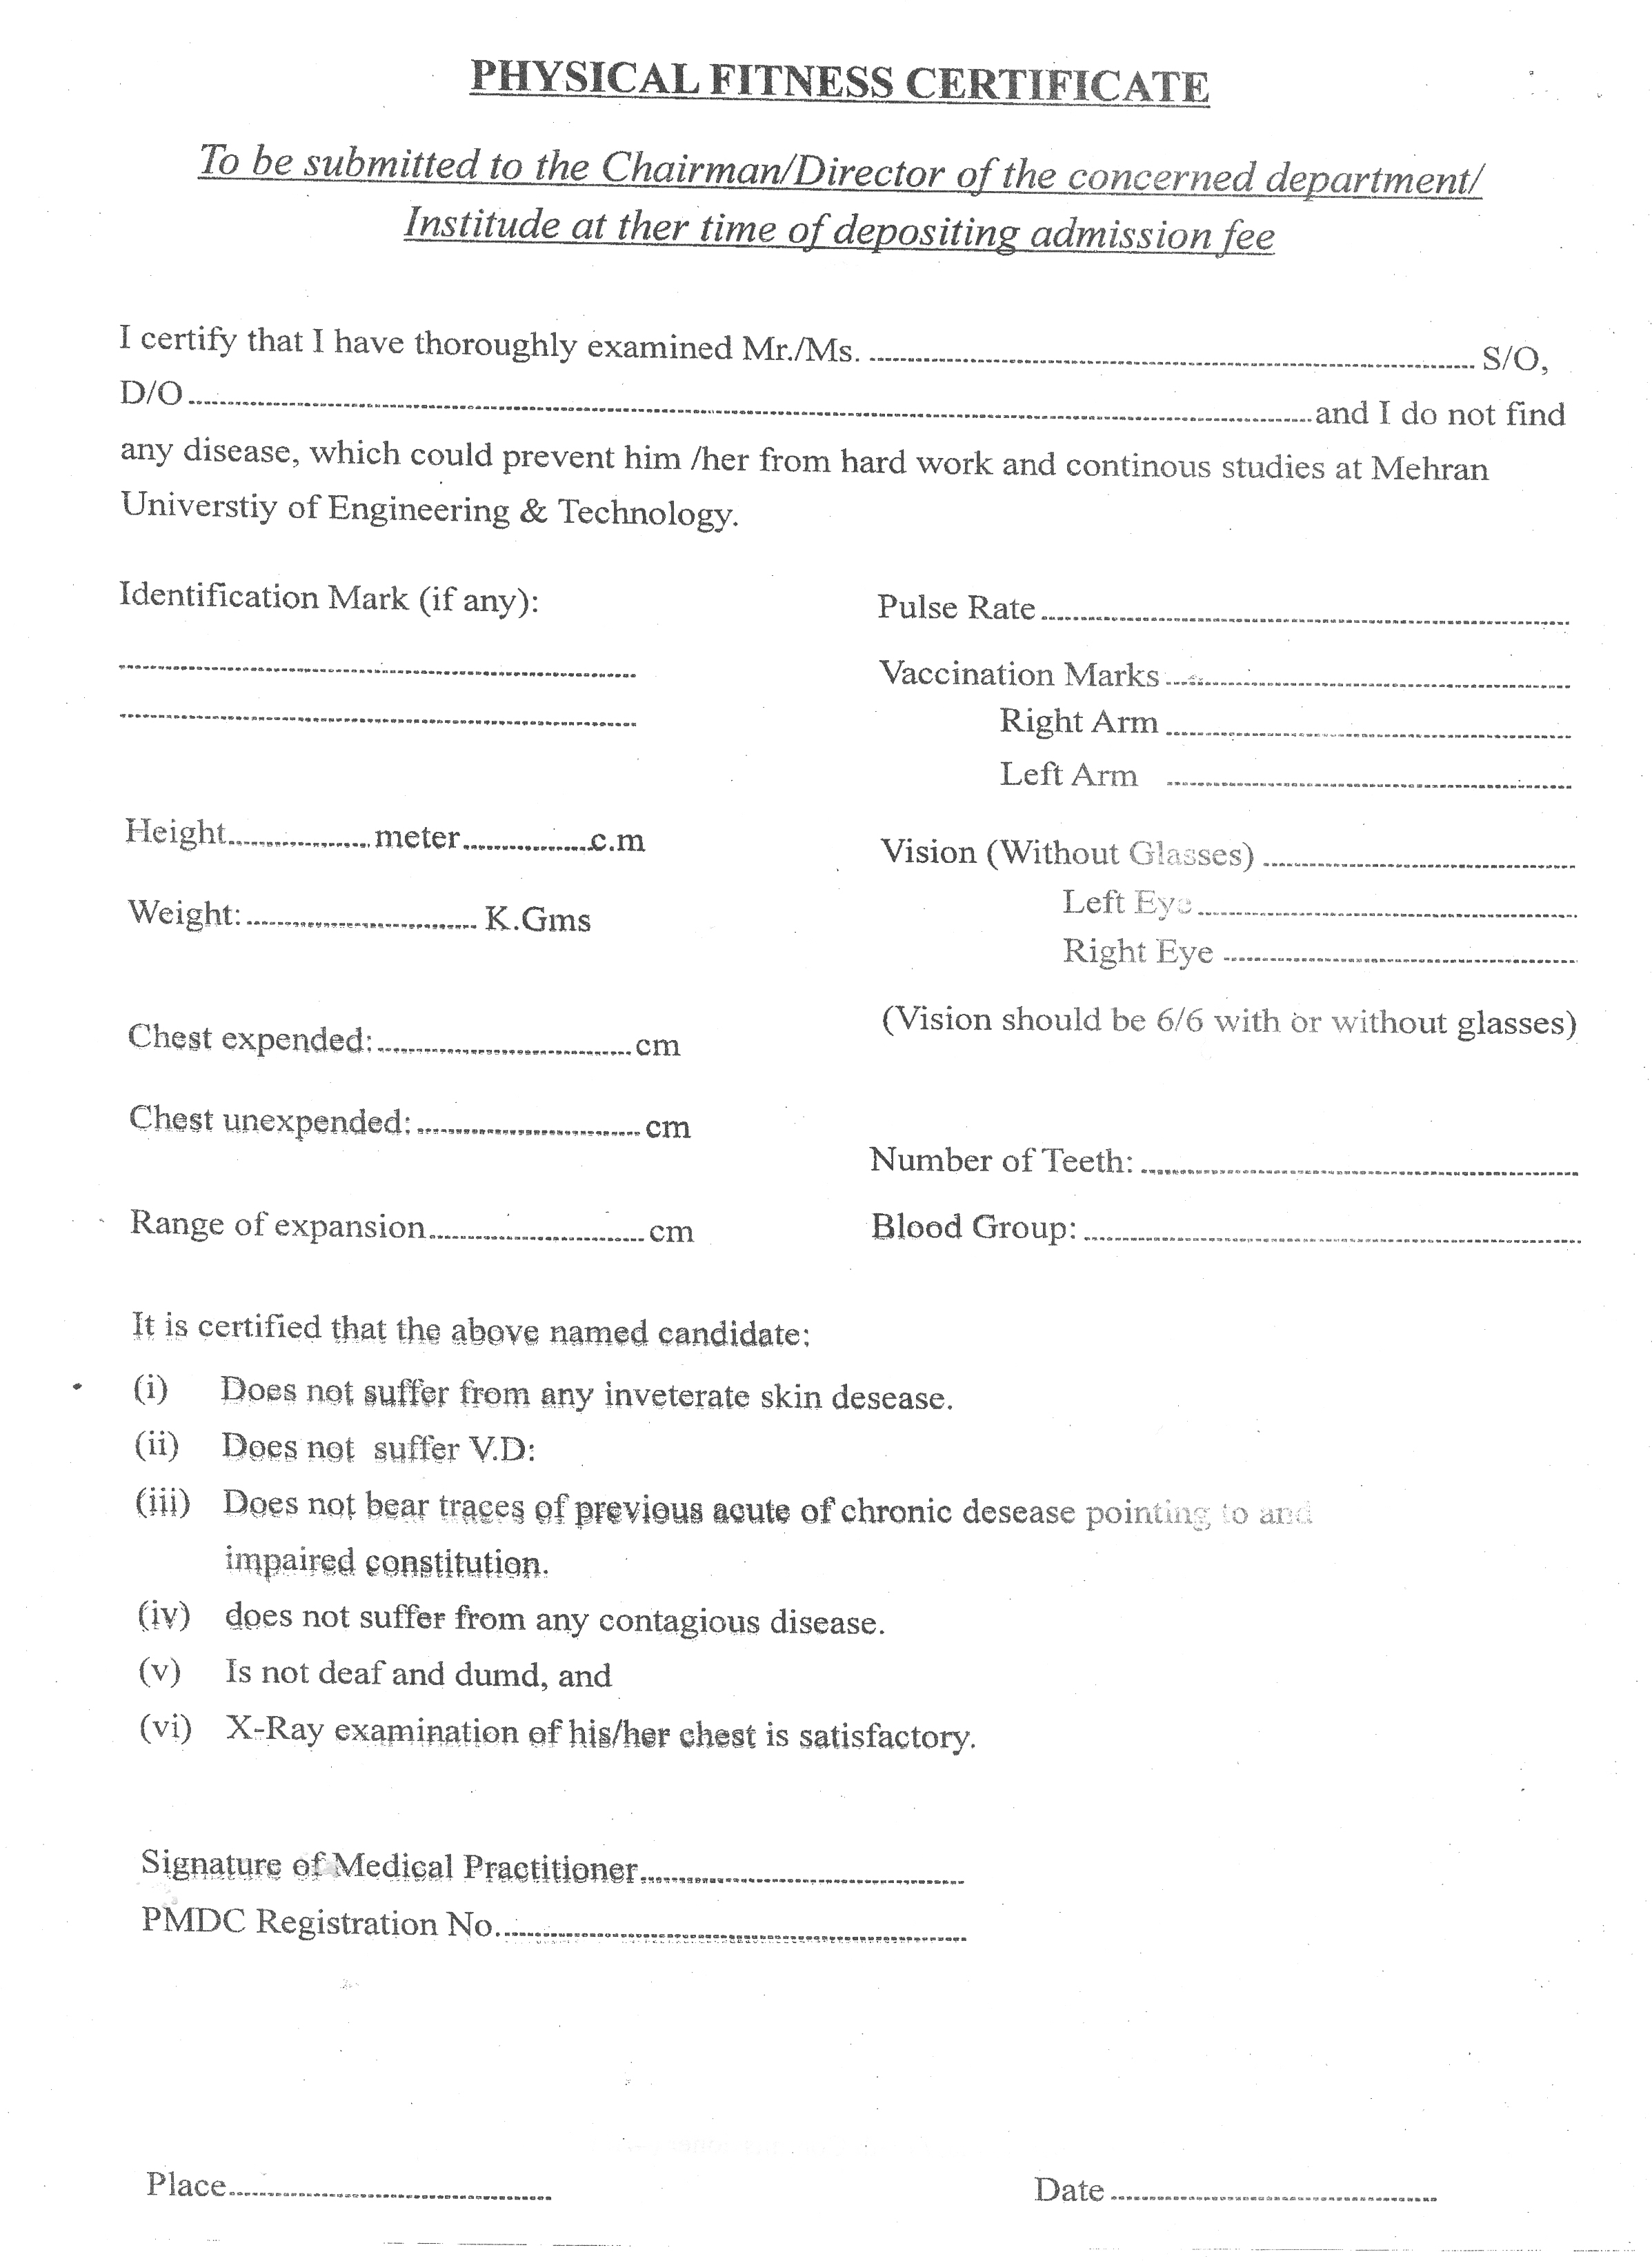 Certificate of physical fitness physician front office medical certificate of physical fitness physician certificate of physical fitness physician yelopaper Images